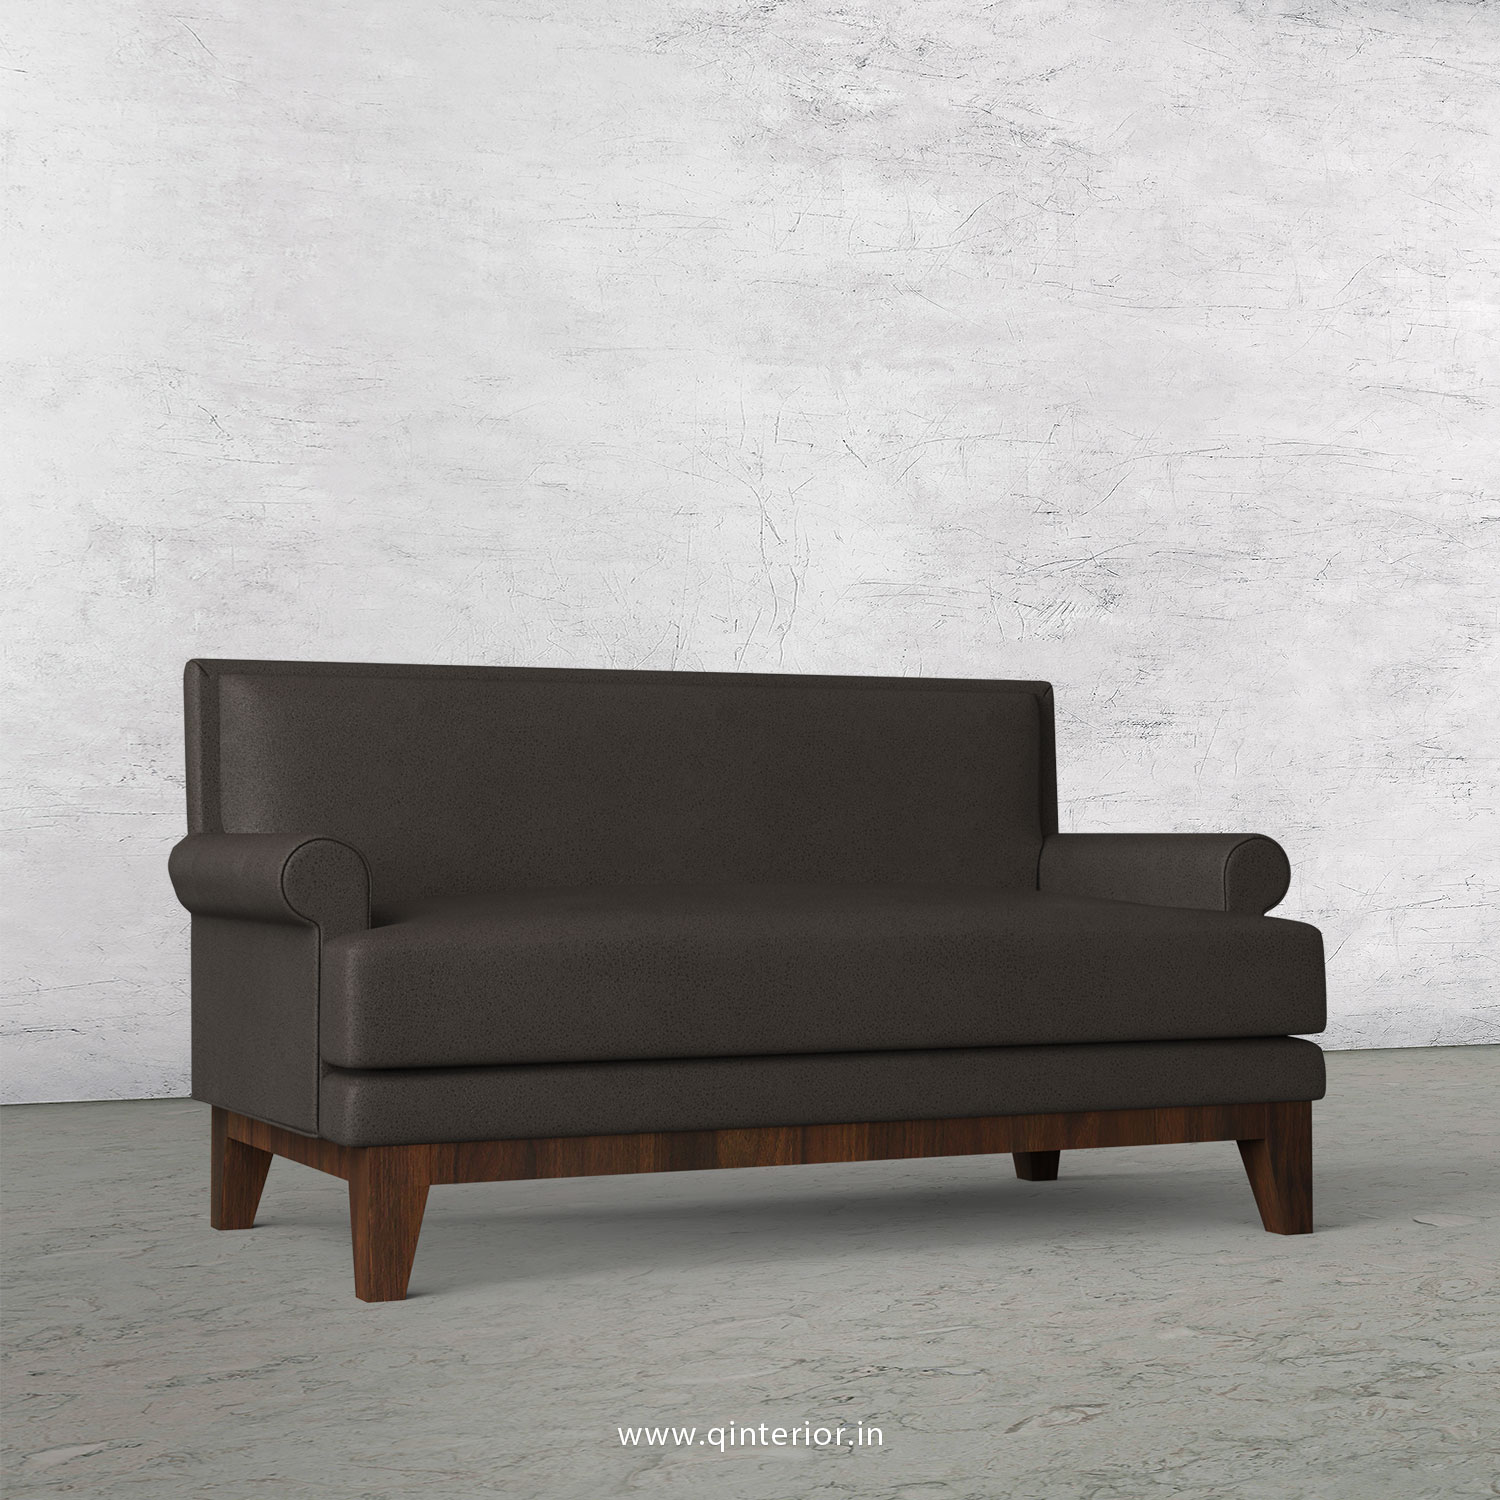 Aviana 2 Seater Sofa in Fab Leather Fabric - SFA001 FL15